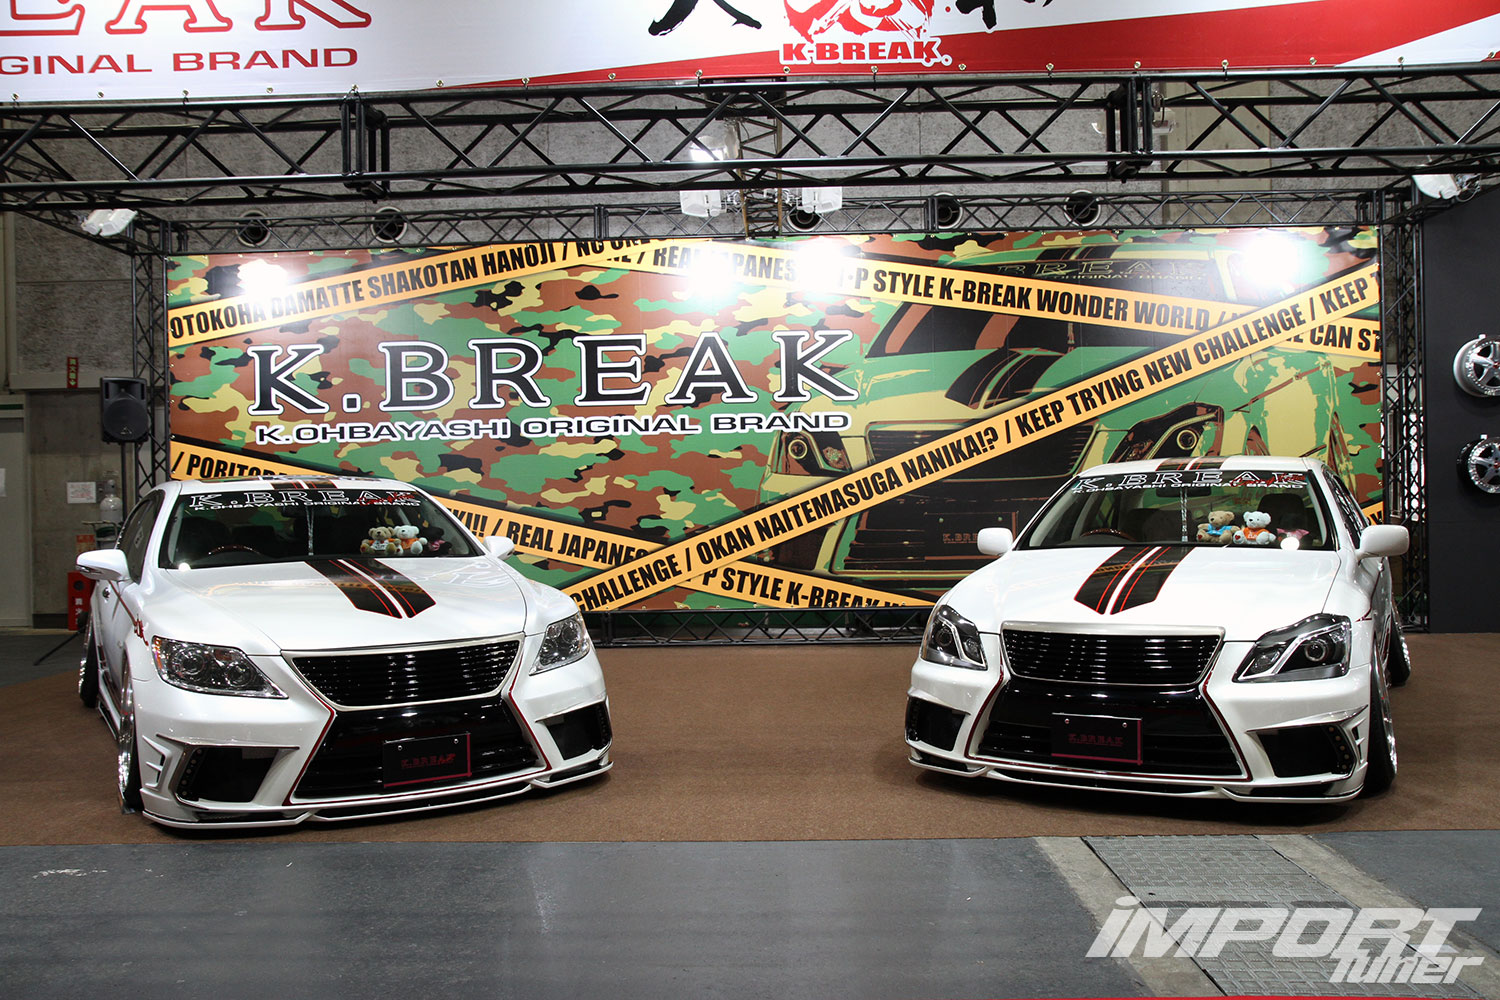 17Th Annual Osaka Auto Messe K Break 01